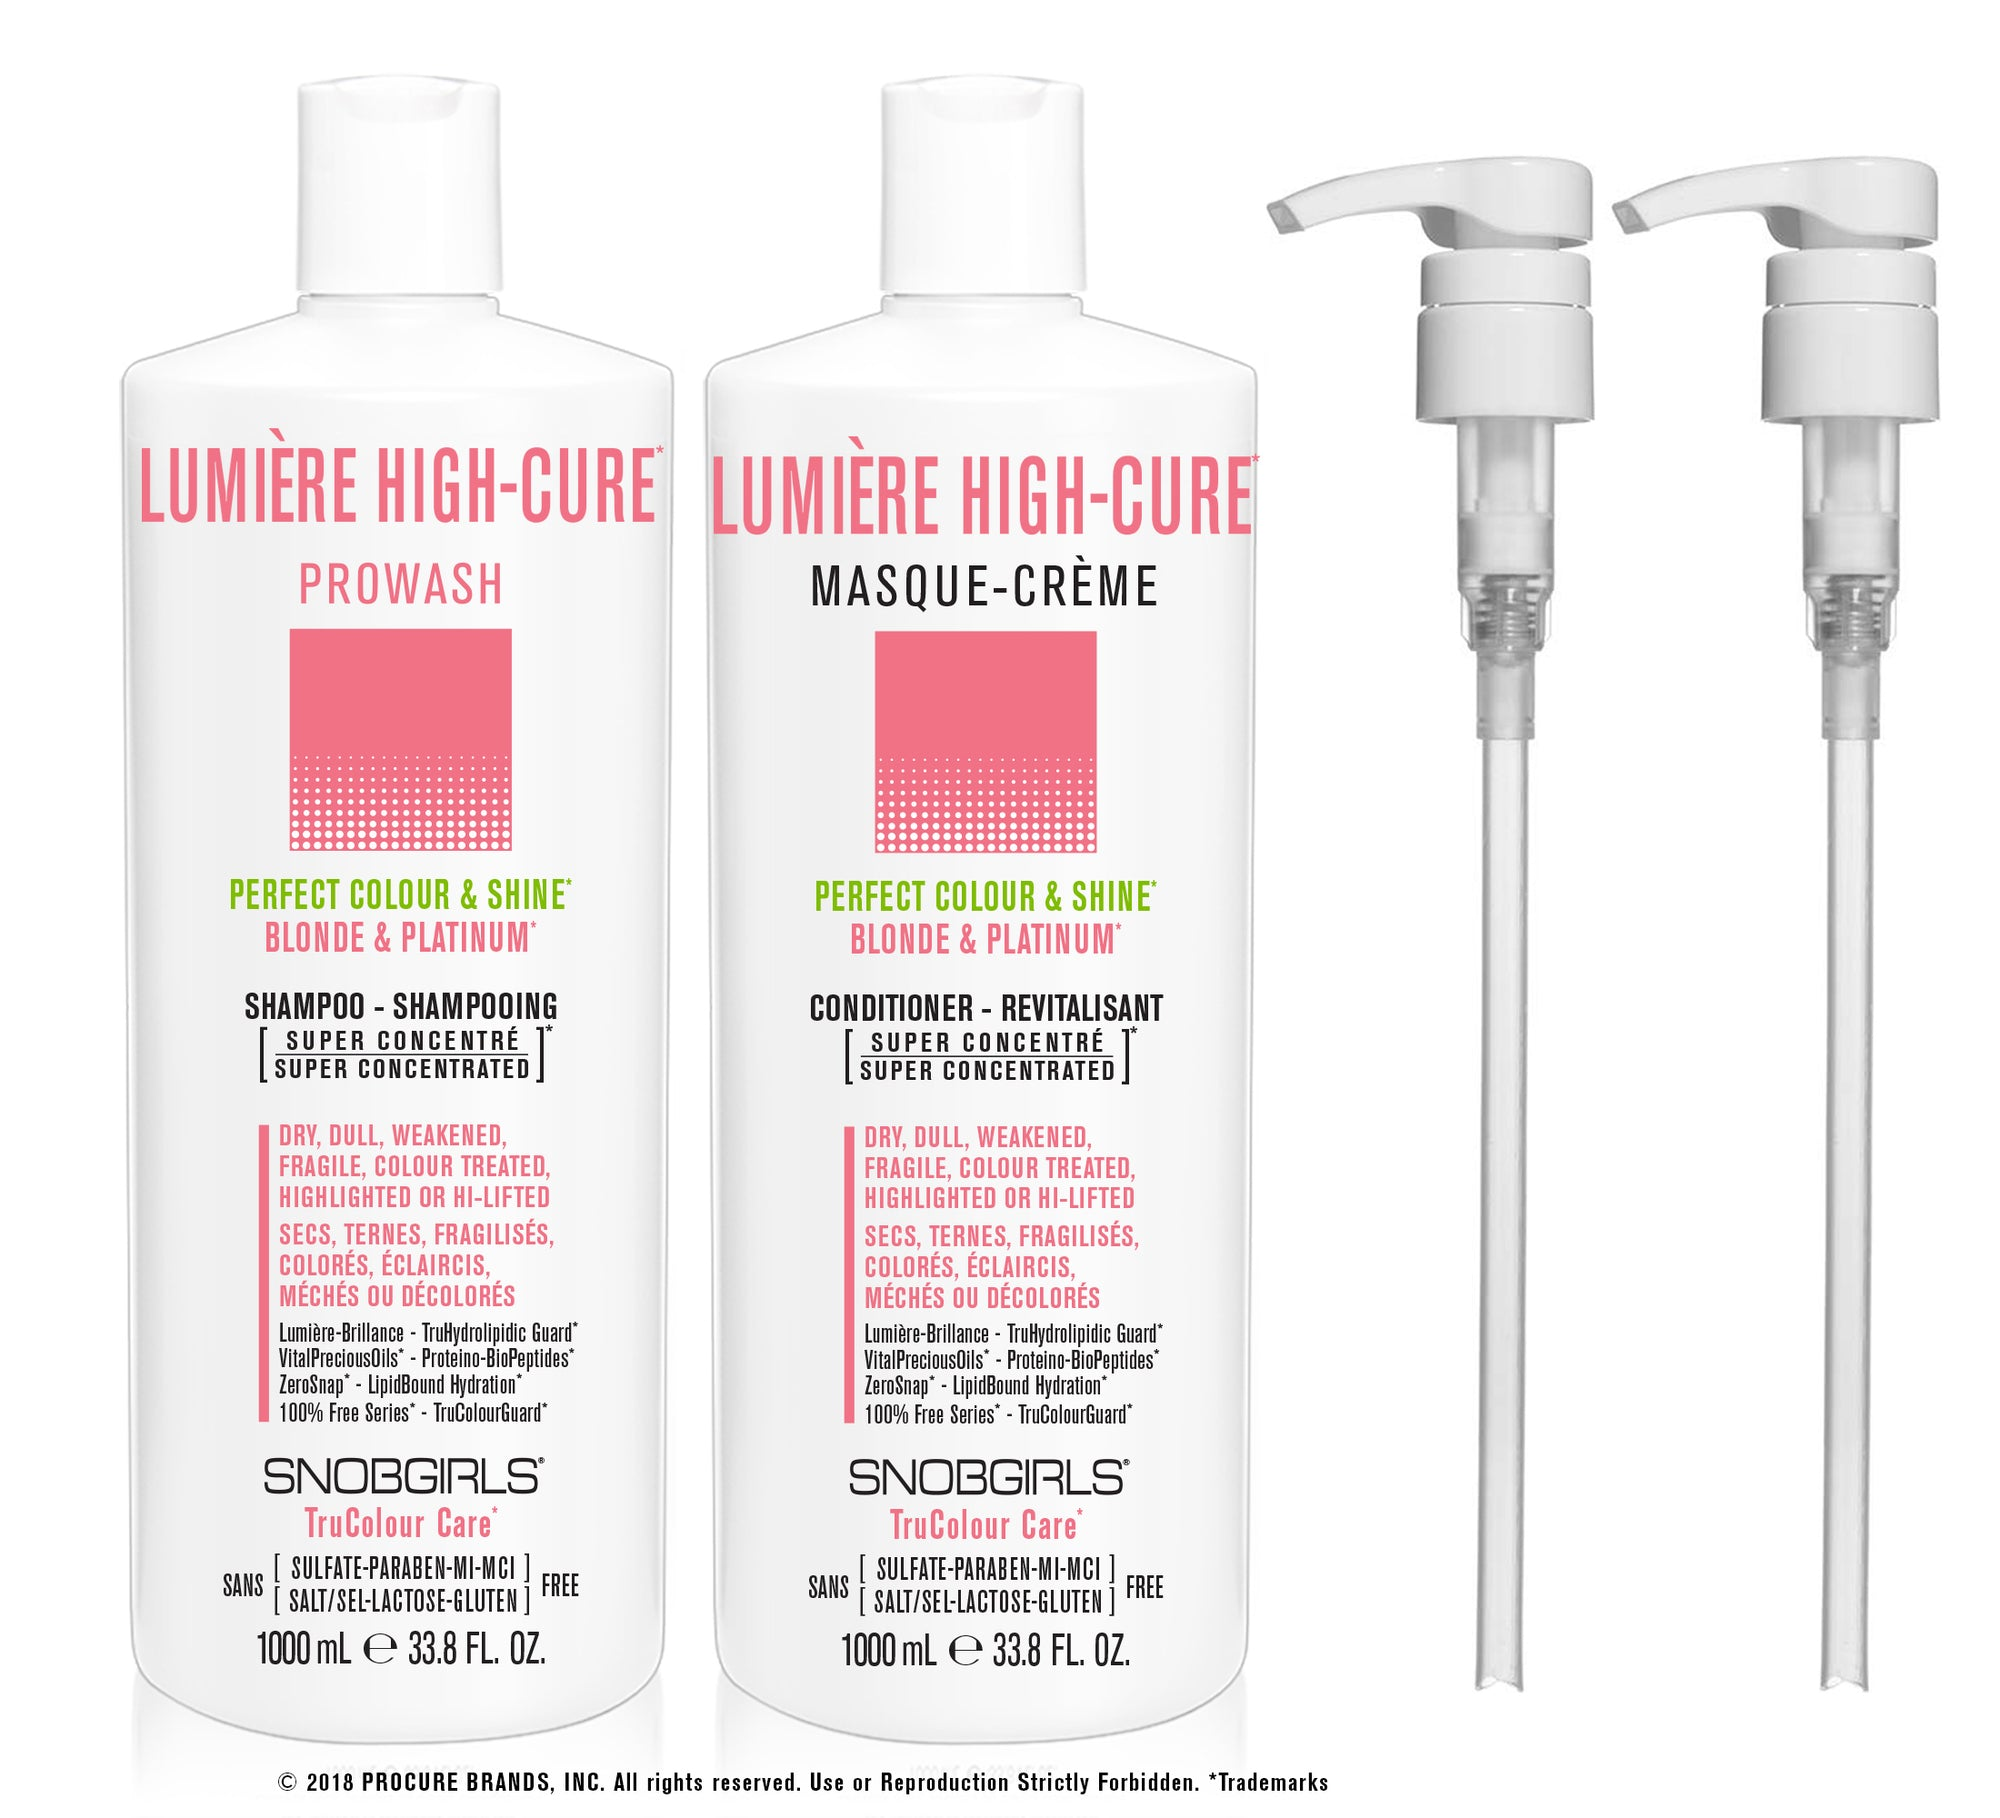 DUO LUMIERE HIGH-CURE - Prowash + Masque-Creme 1000 mL - SNOBGIRLS Canada